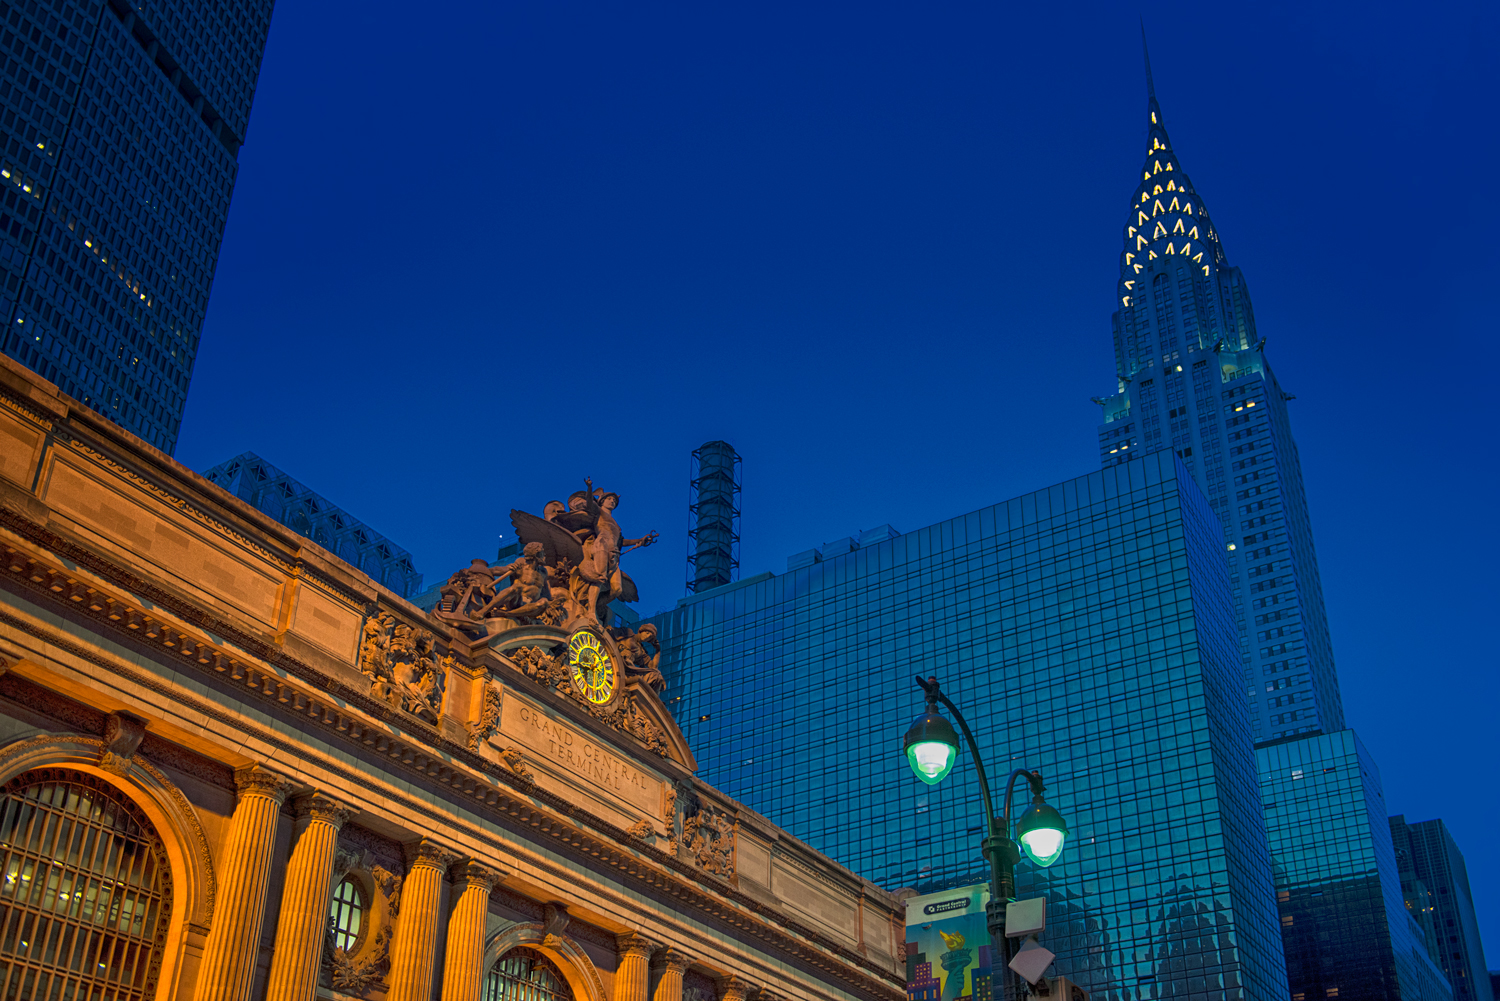 Grand Central and The Chrysler Building, NYC (File 9792) - Leslie picked 10/92This is from May 30th, 2015. I was out that evening hoping to get a shot of Manhattanhenge, but the clouds obscured my chances. As the sun went down, the sky cleared enough to get this. My favorite building in NYC. It's handheld so not as sharp as I would like. I'd totally forgotten about this photo. (L&M Filename 9792)